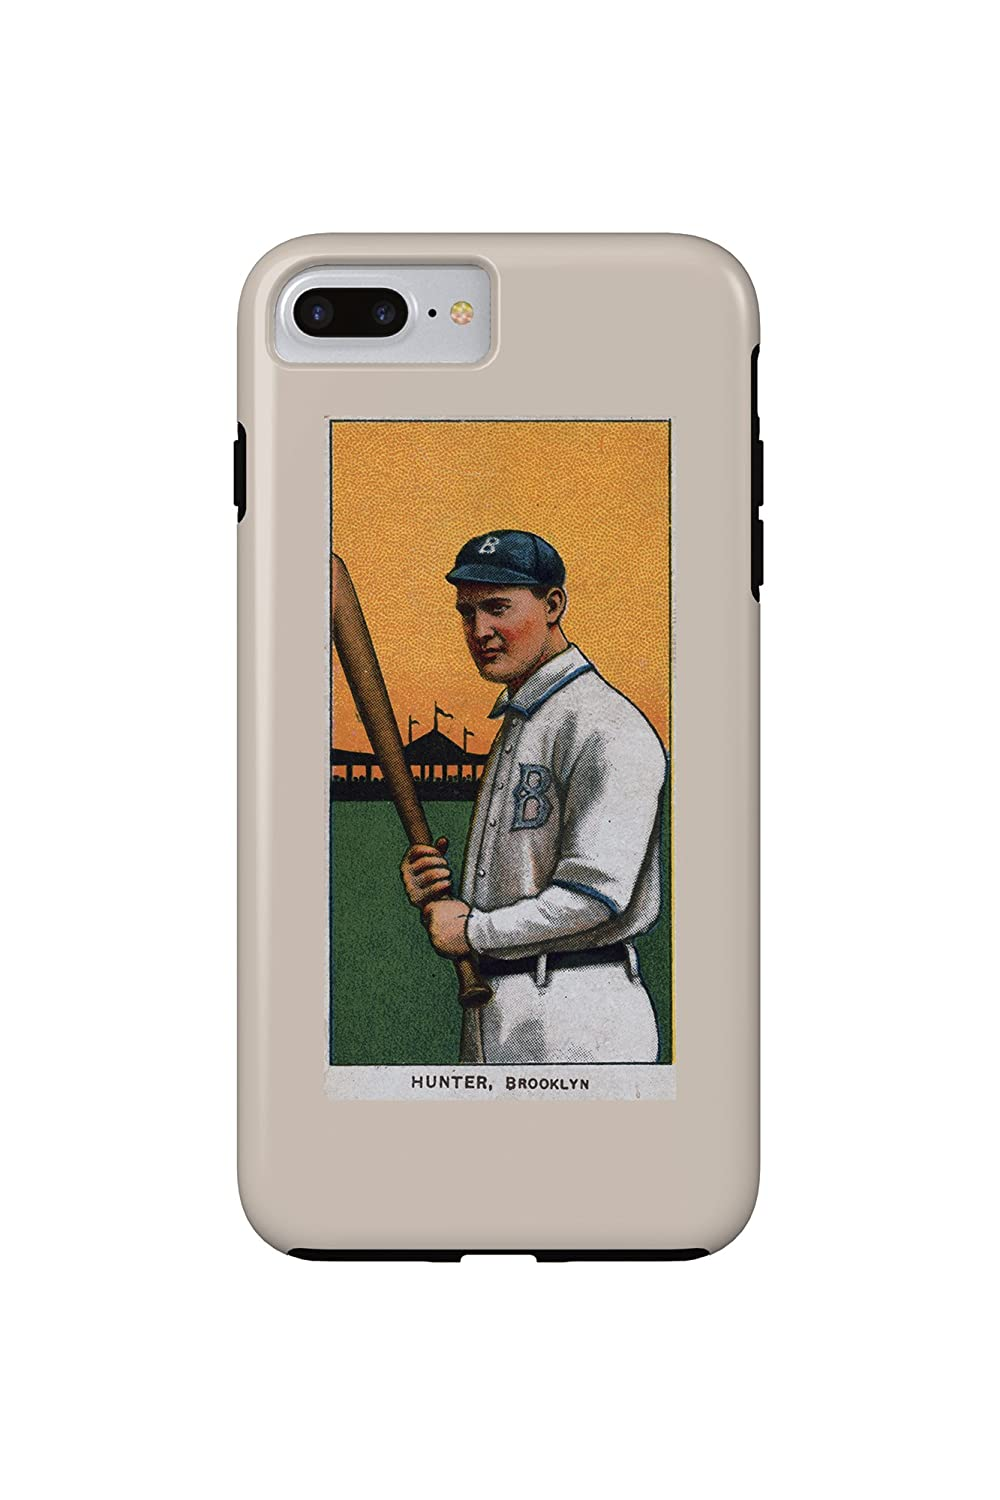 Amazon.com: Brooklyn Superbas - George Hunter - Baseball Card (iPhone 7 Plus Cell Phone Case, Slim Barely There): Cell Phones & Accessories